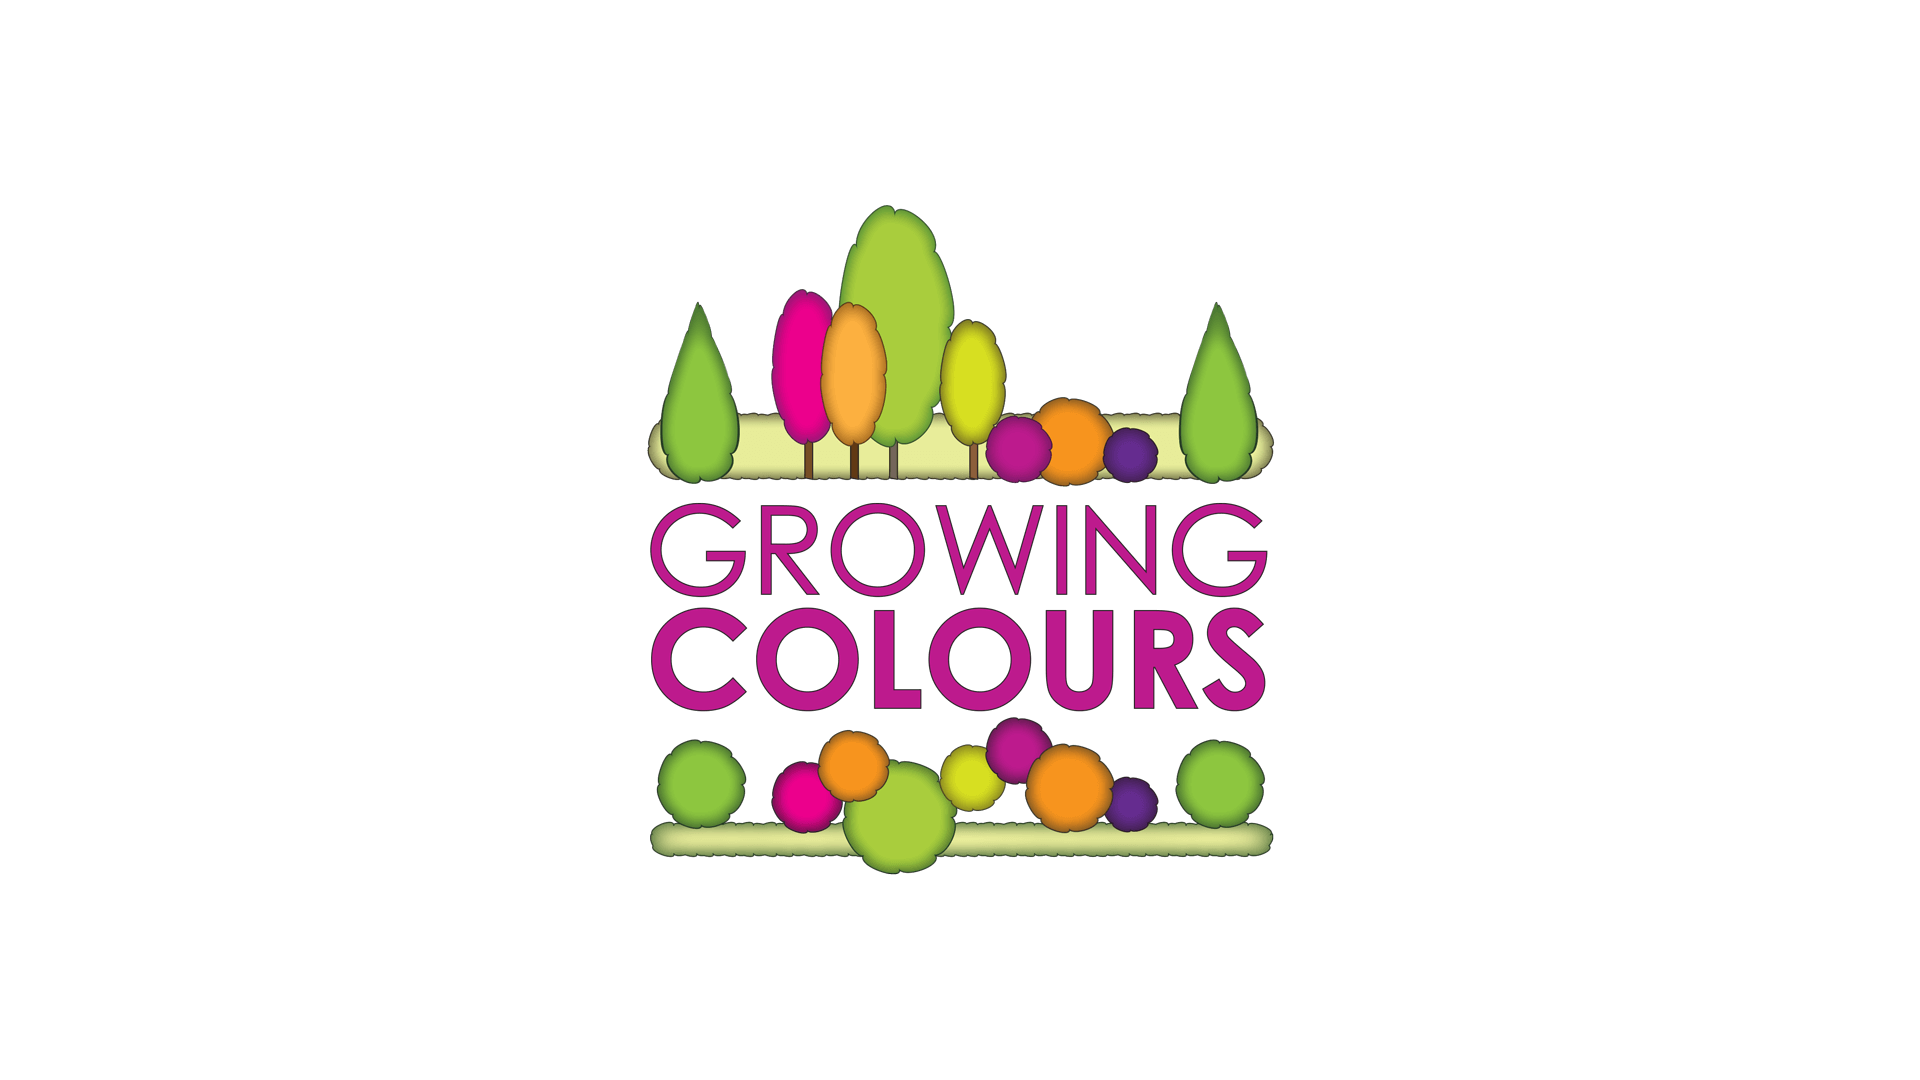 Growing Colours Logo Design